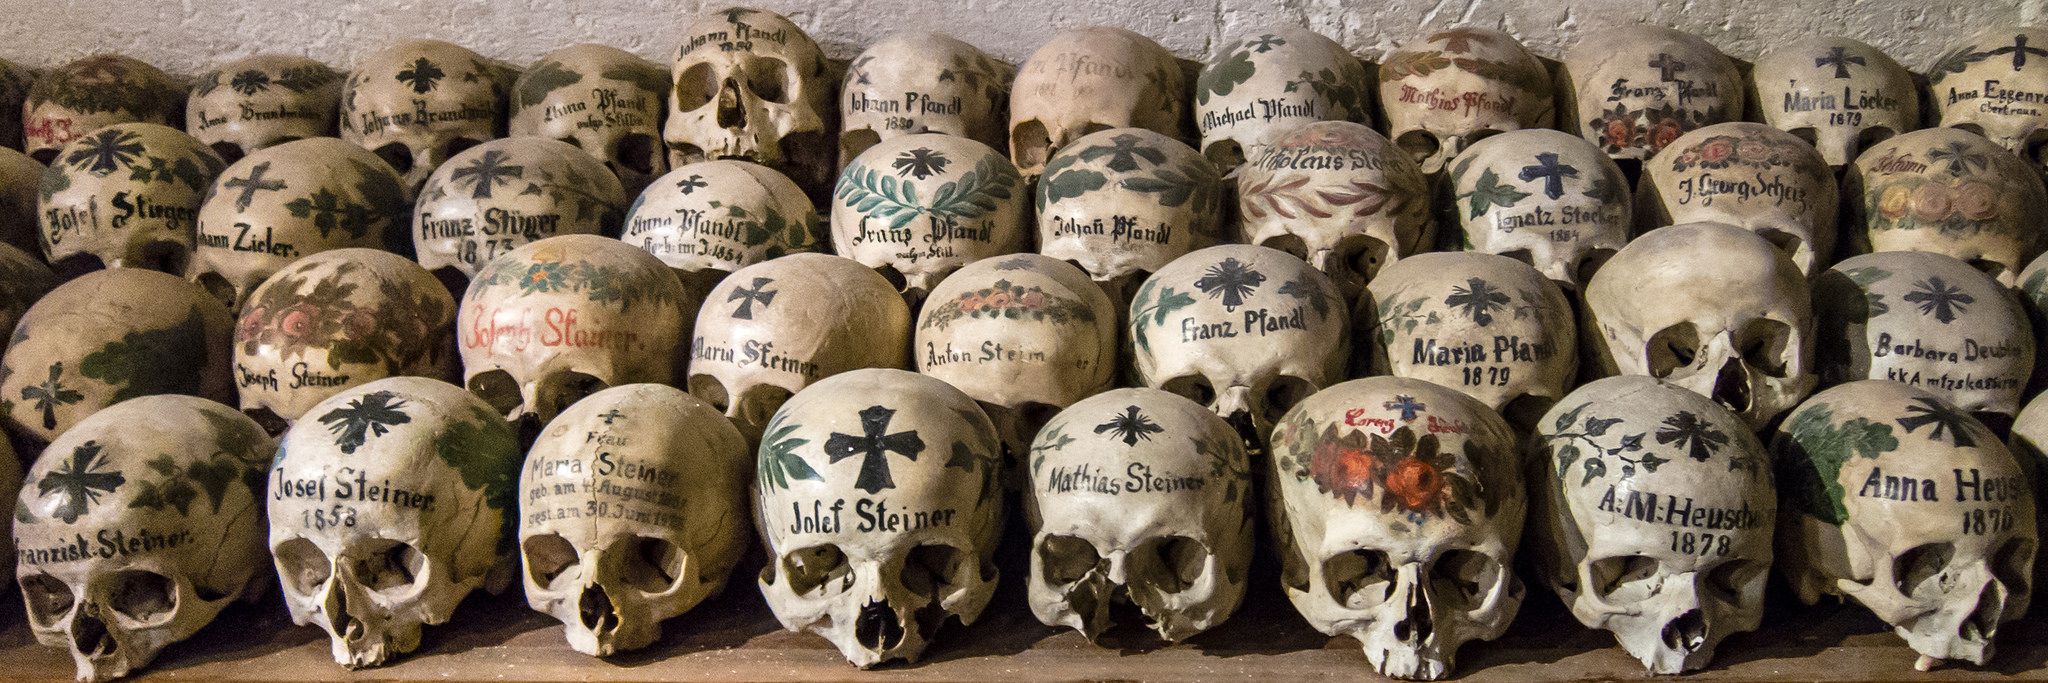 The Painted Skulls of Hallstatt